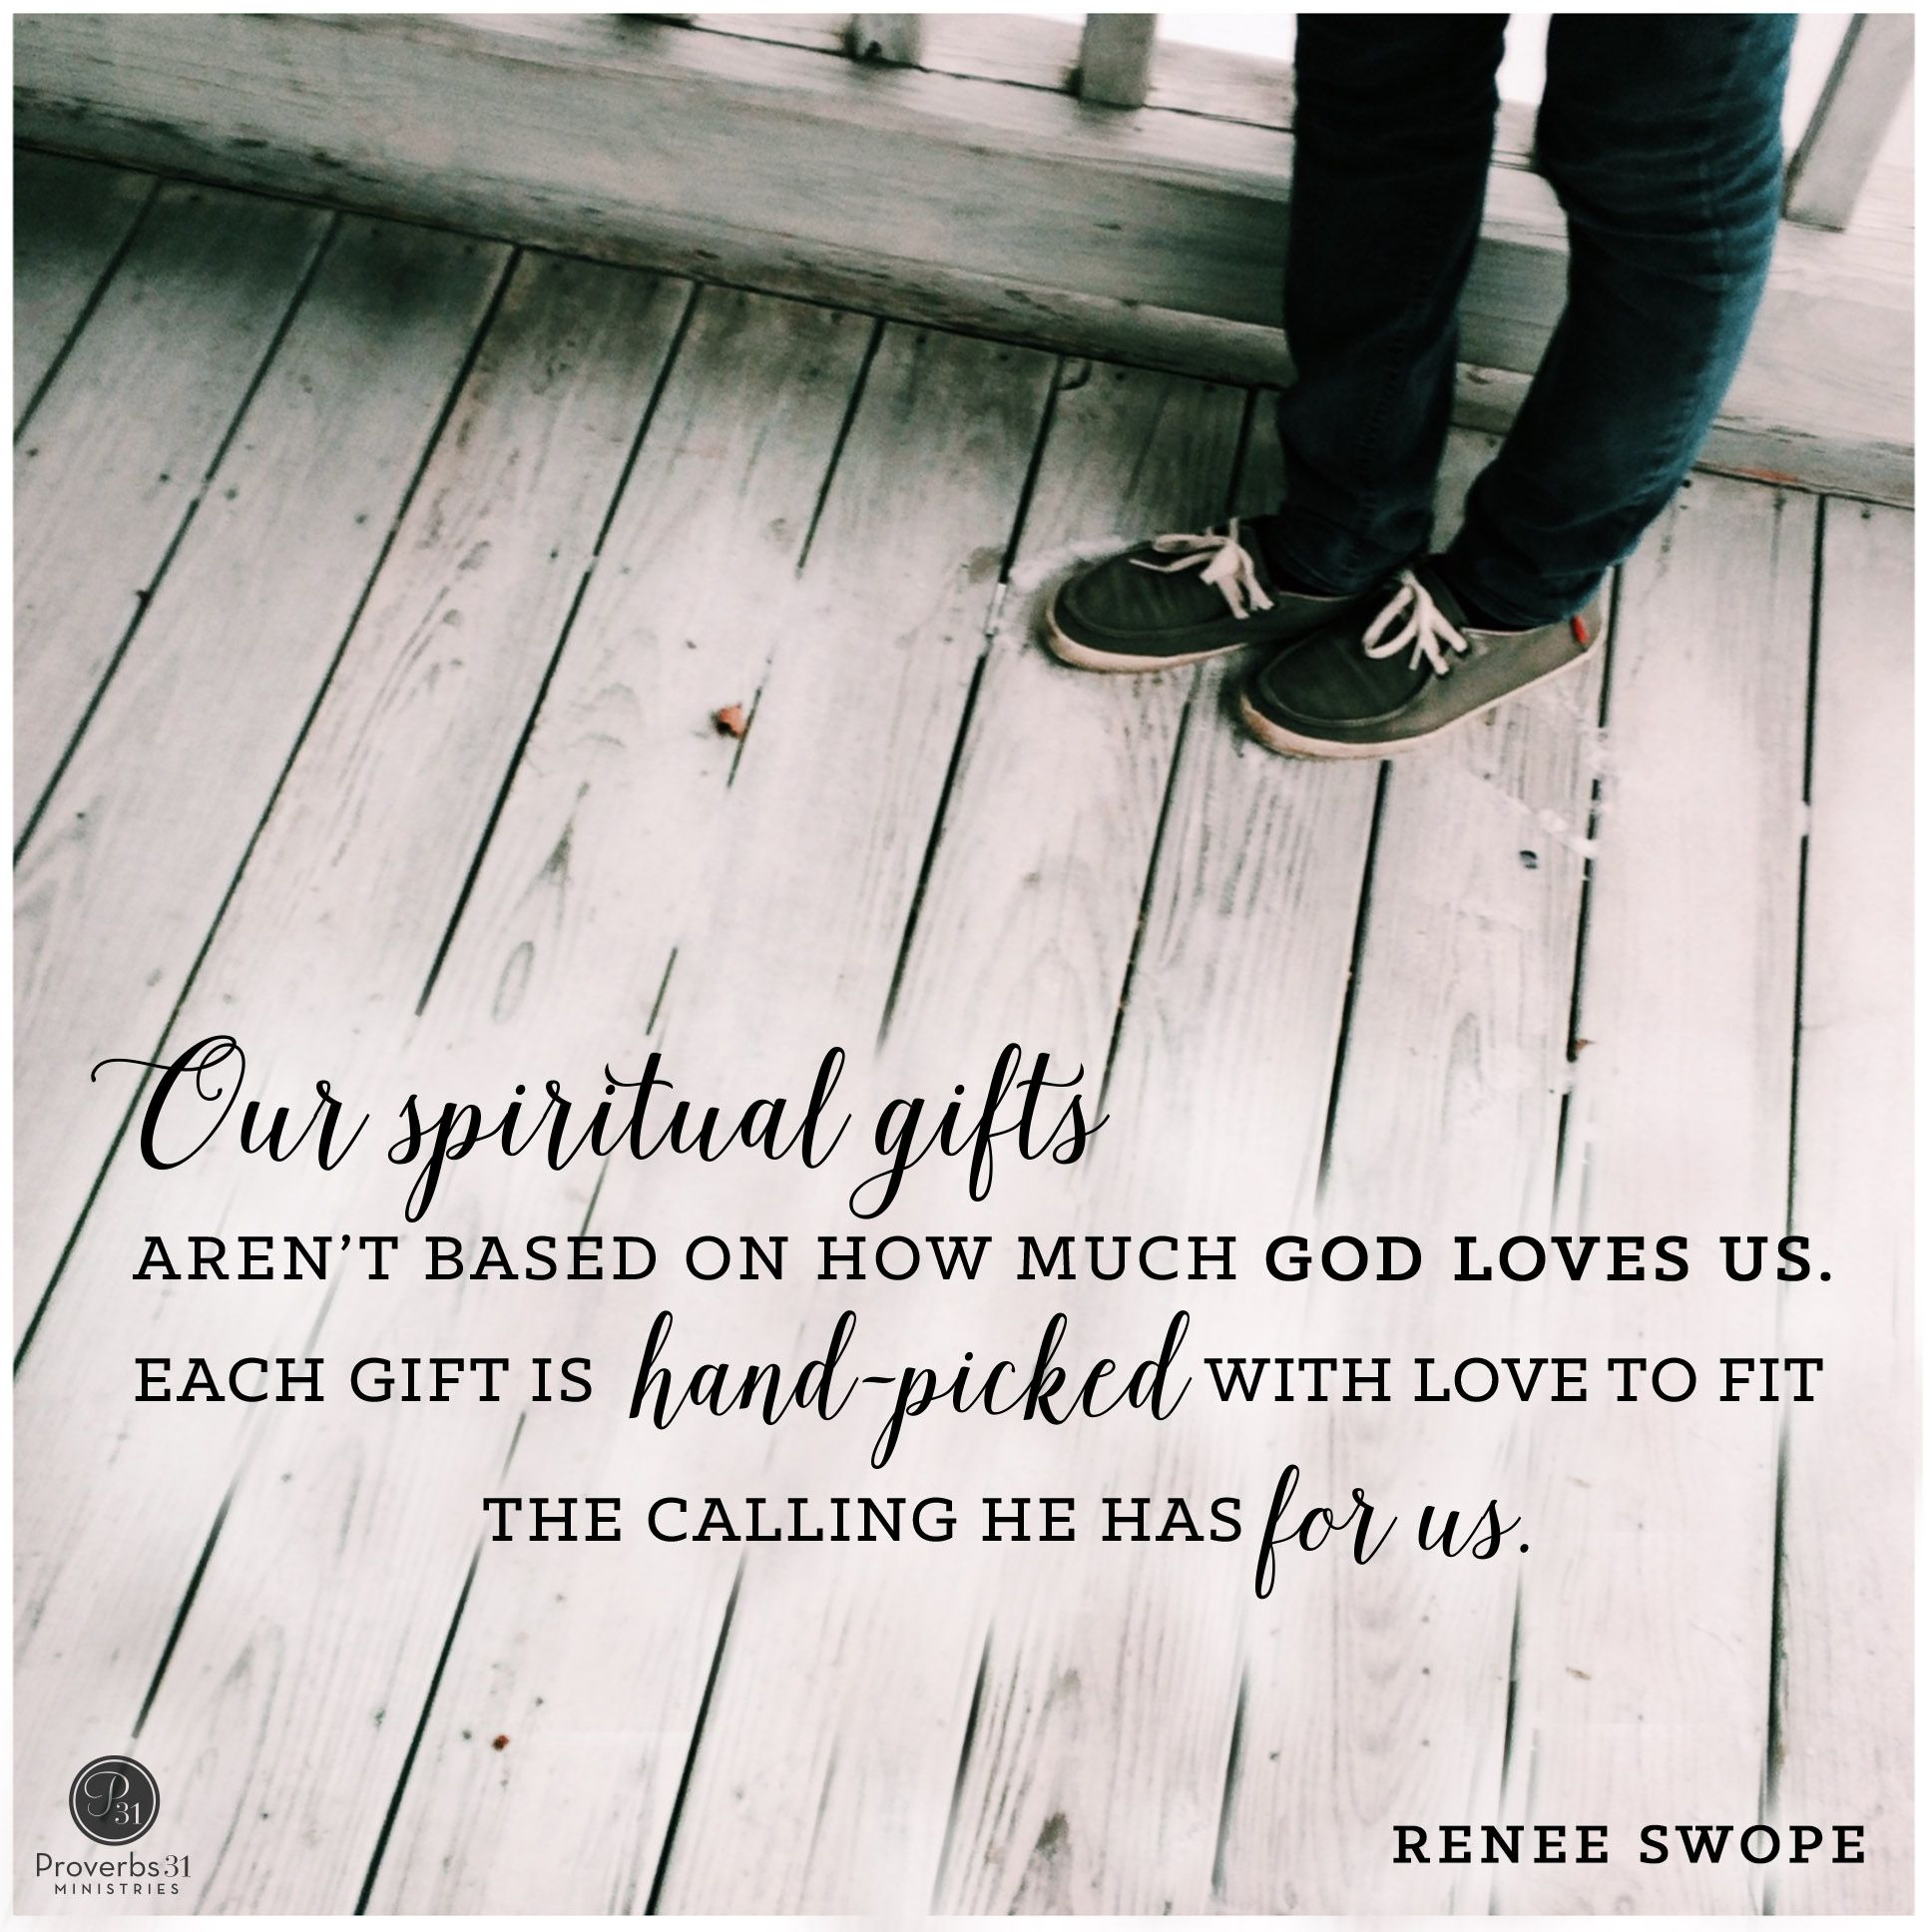 Does he love her more spiritual gifts proverbs 31